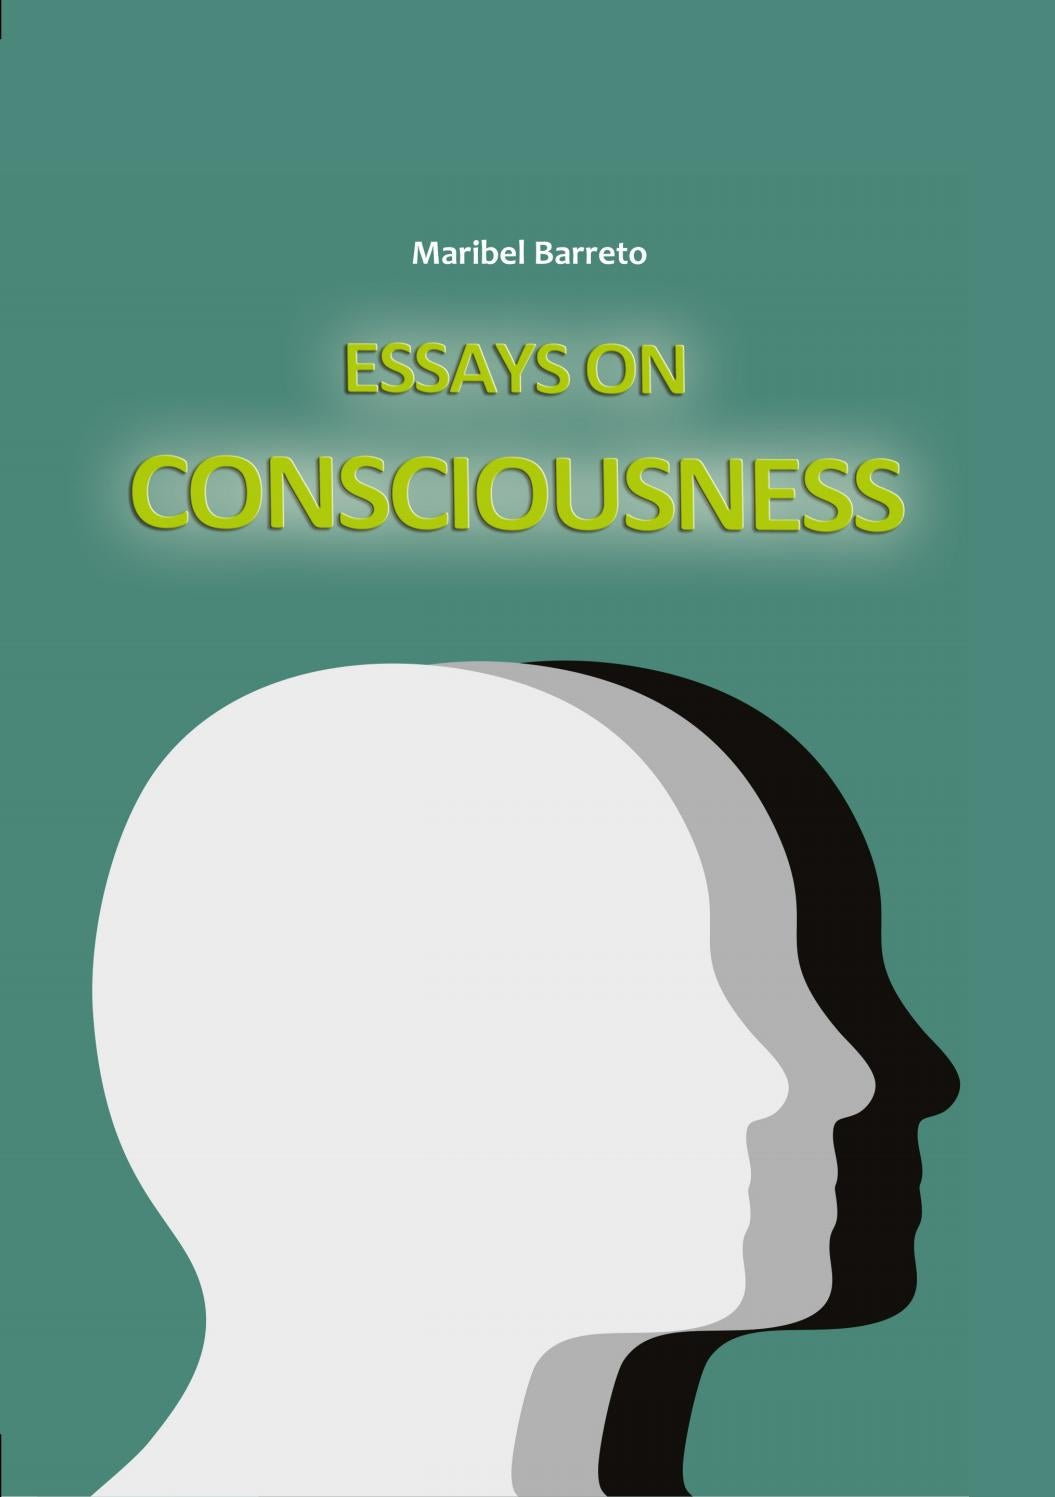 essays on consciousness maribel barreto besides god our conscience is our greatest witness jair teacutercio